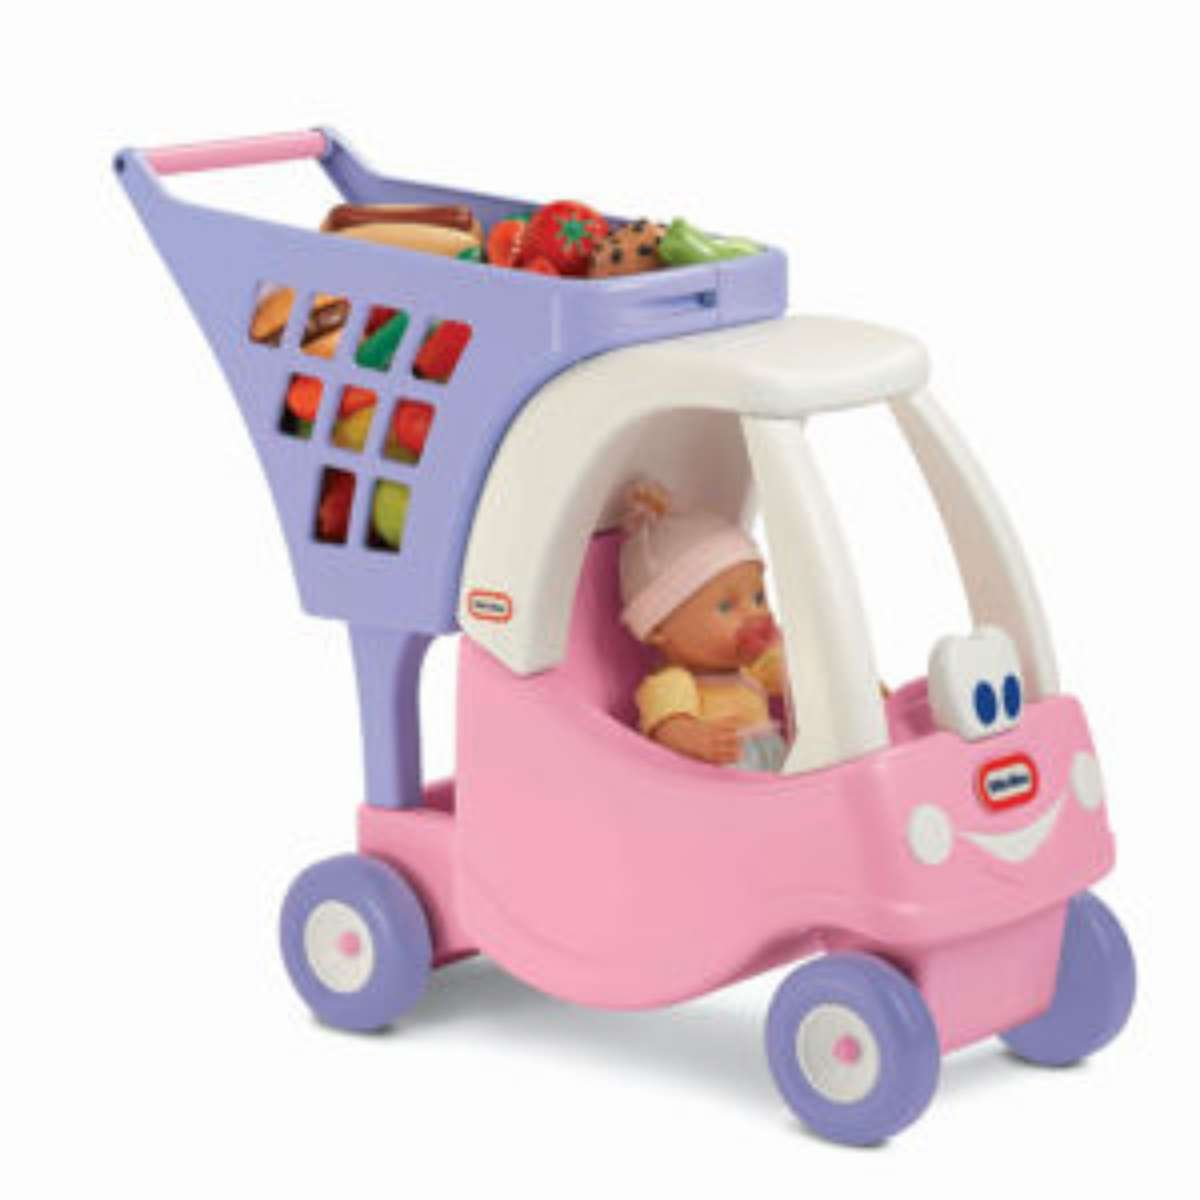 Little Tikes Cozy Shopping Cart Pink/Purple by Little Tikes